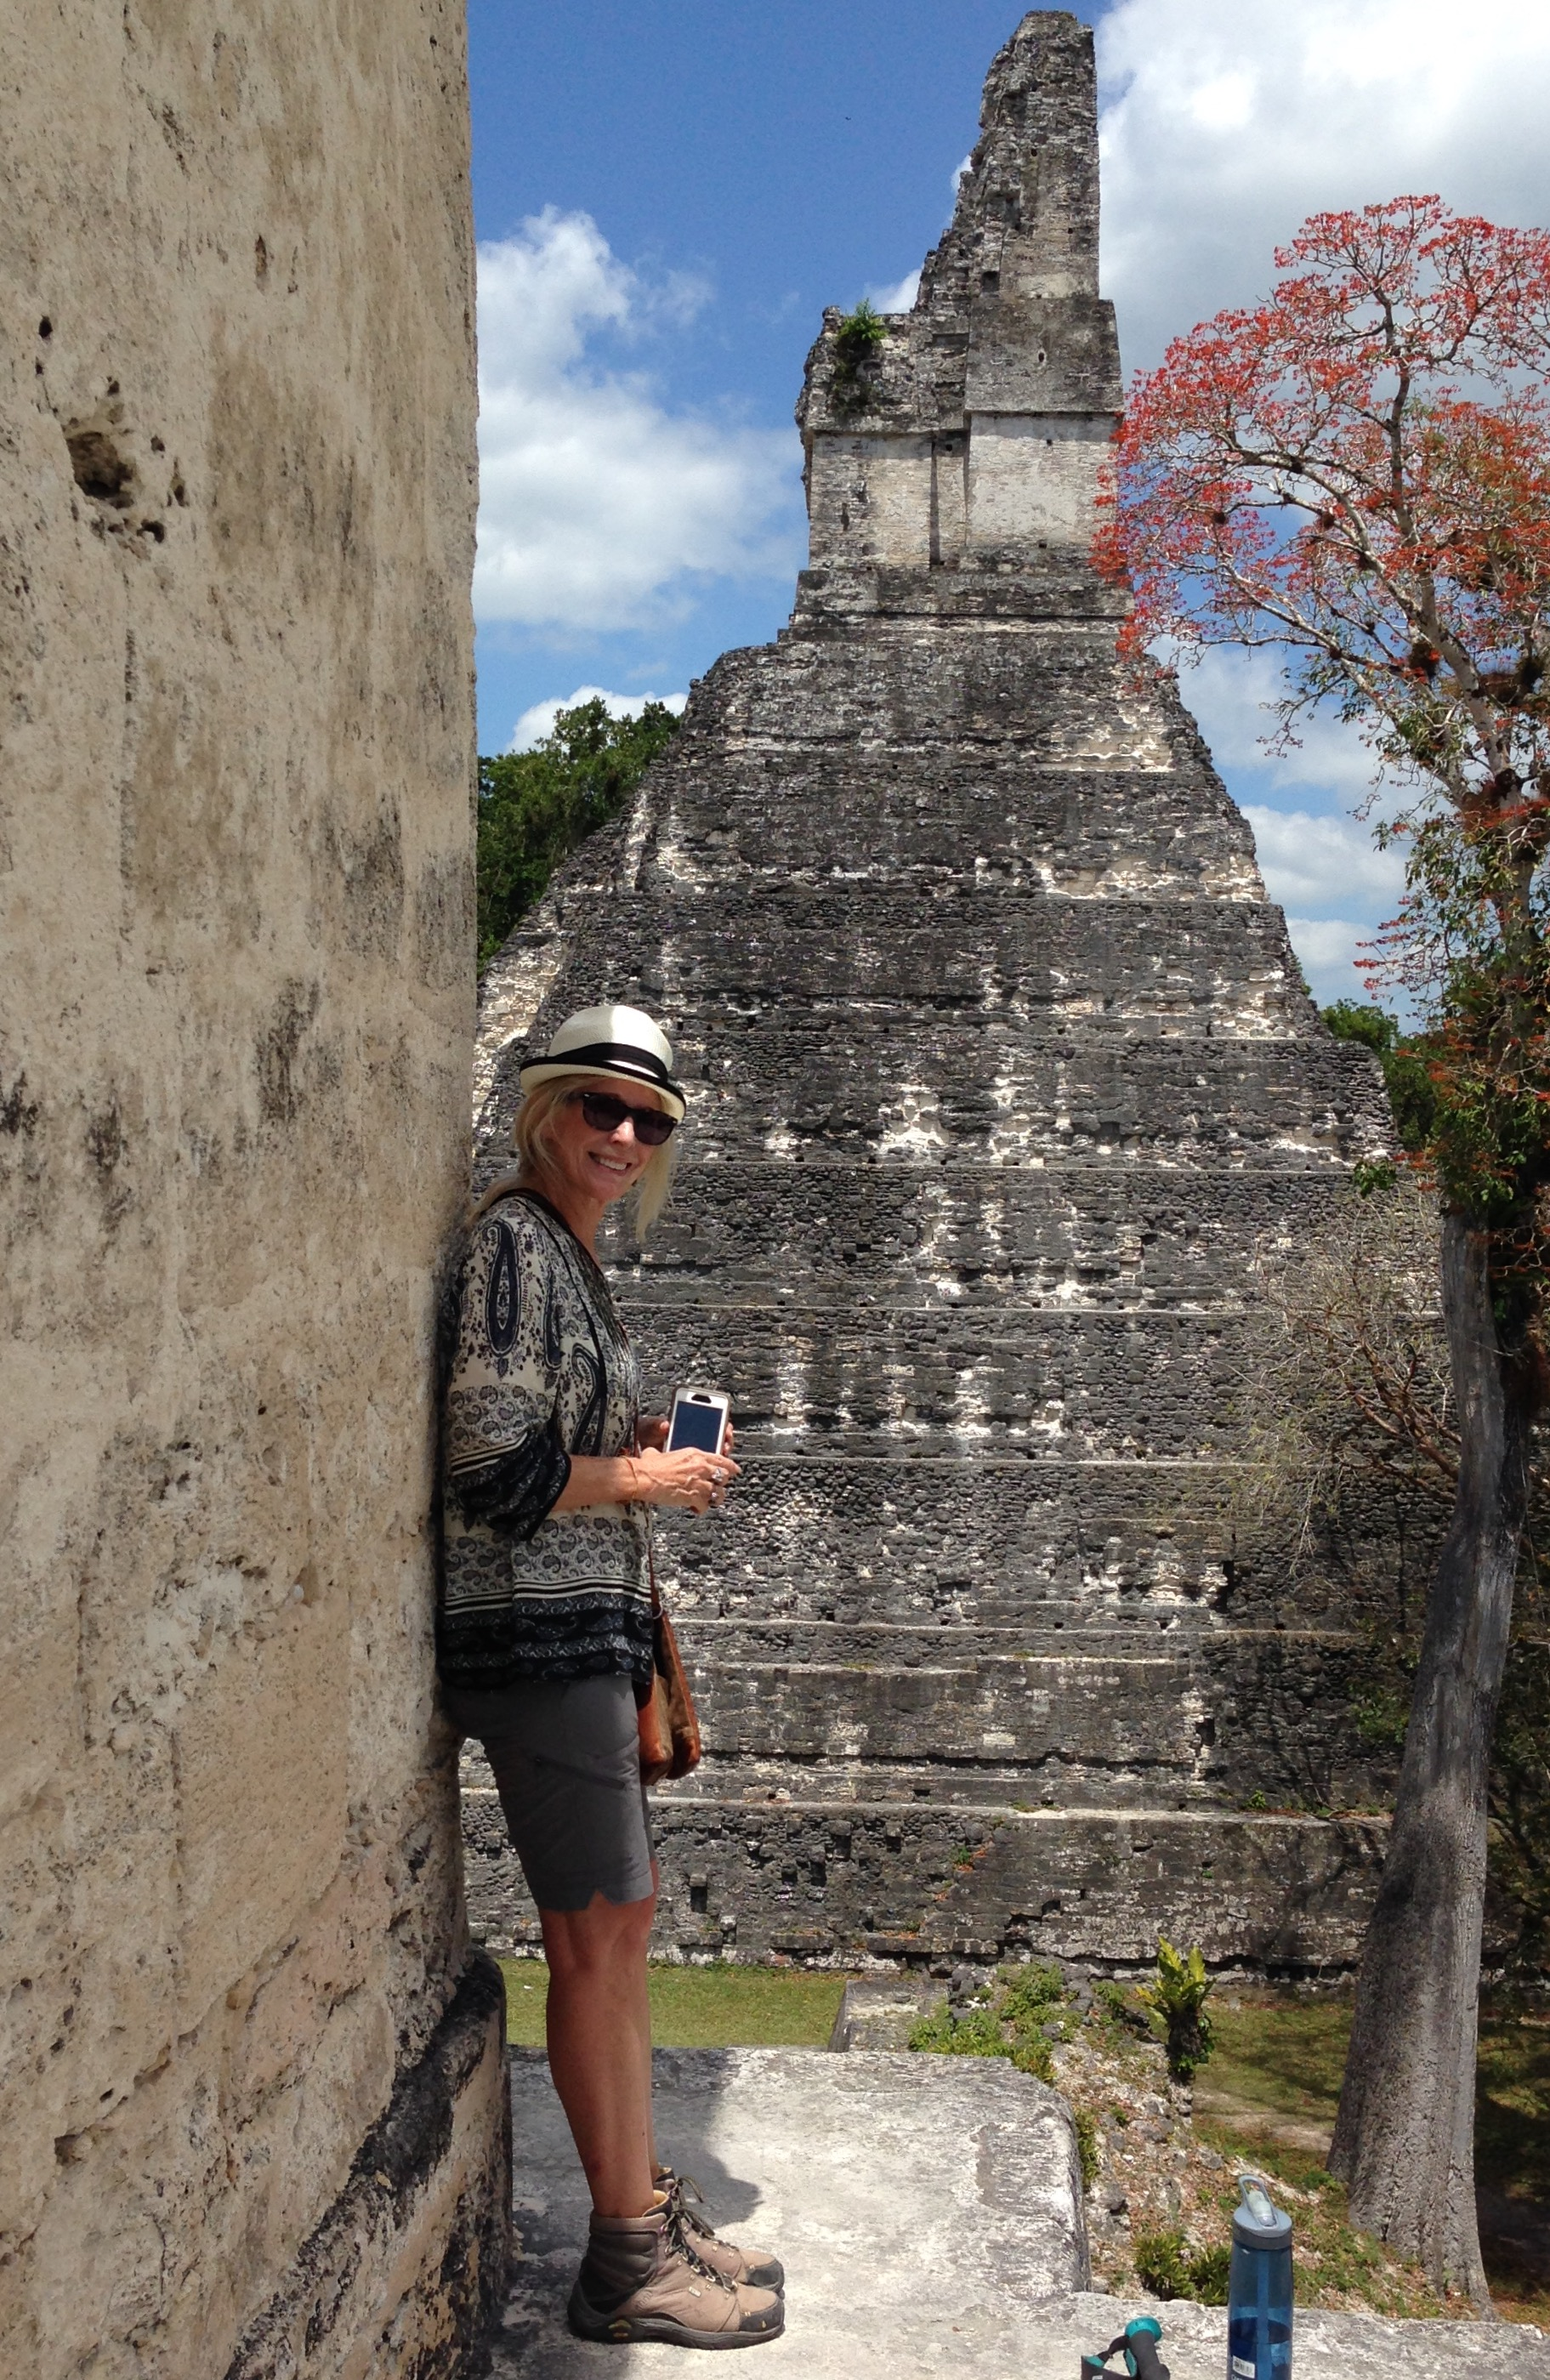 That's me taking a break in the shade overlooking the main plaza of Tikal.